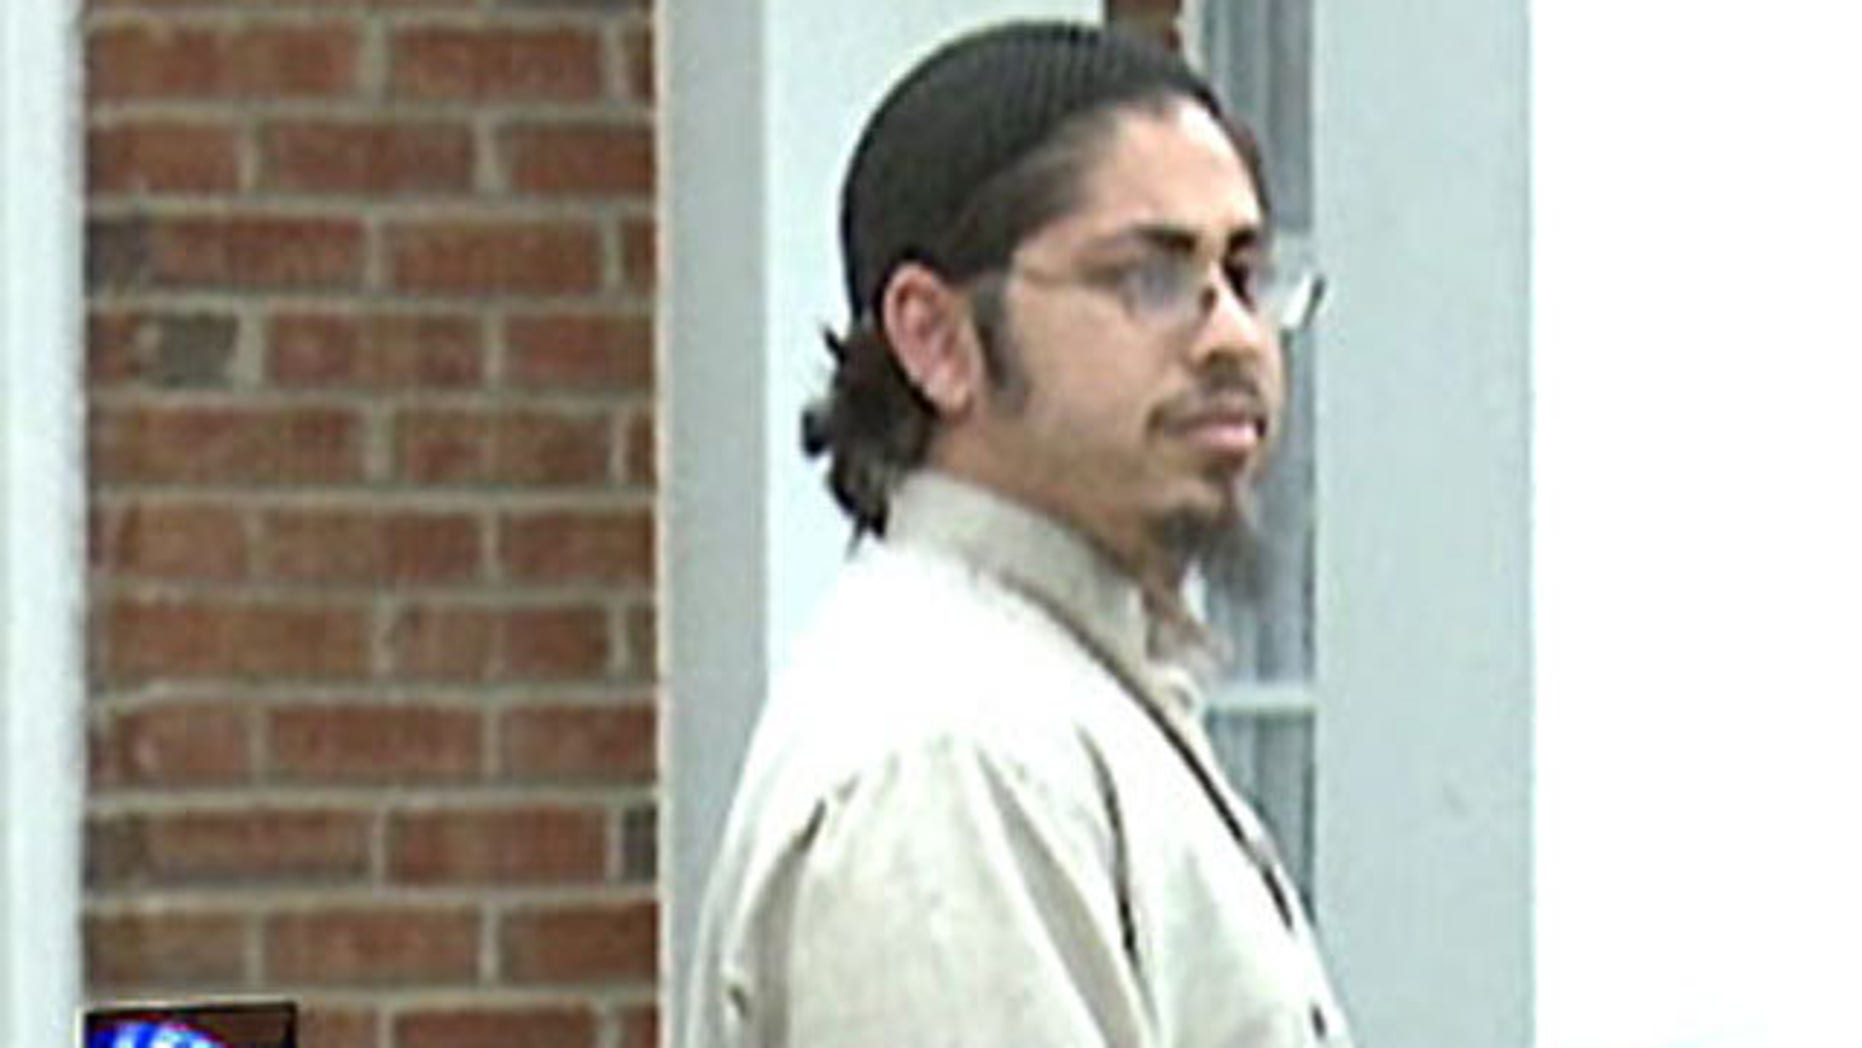 Samir Khan, a 24-year-old North Carolina man who left for Yemen last October, is believed to be editor-in-chief of Inspire, a newly launched online magazine that seeks to recruit members of Al Qaeda in the Arabian Peninsula (FoxNews.com).